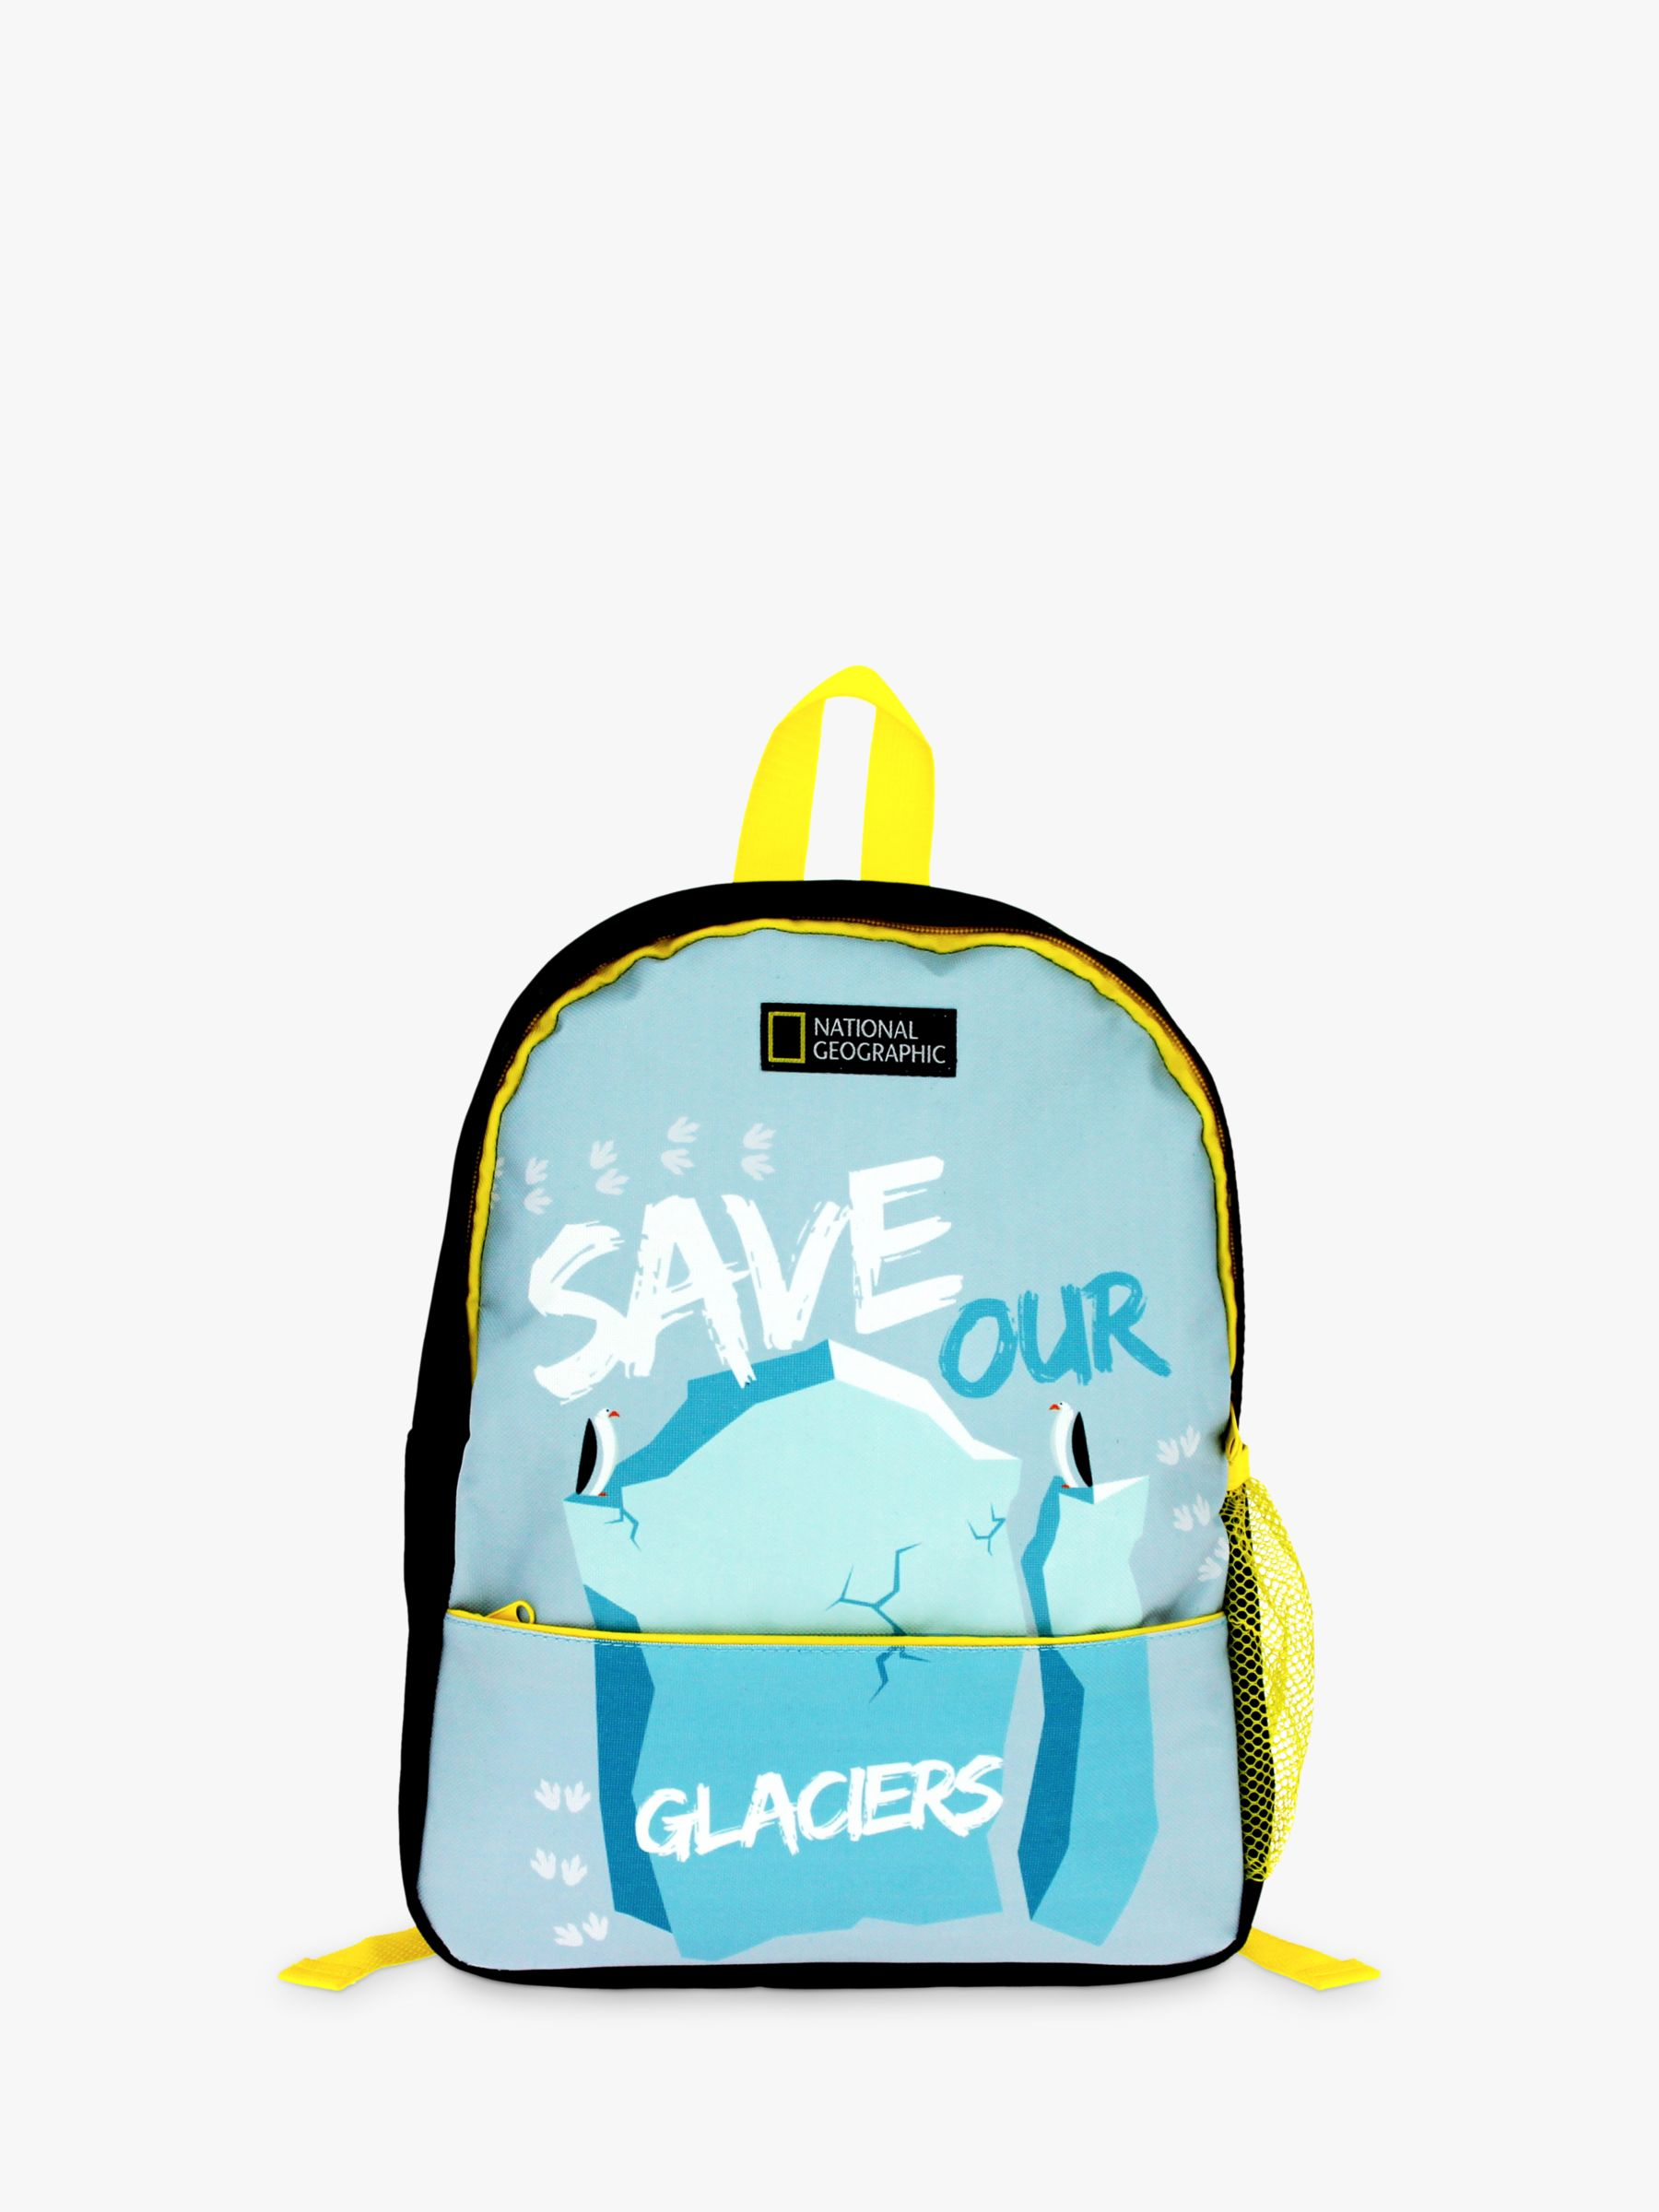 National Geographic National Geographic Save Our Glaciers Children's Backpack